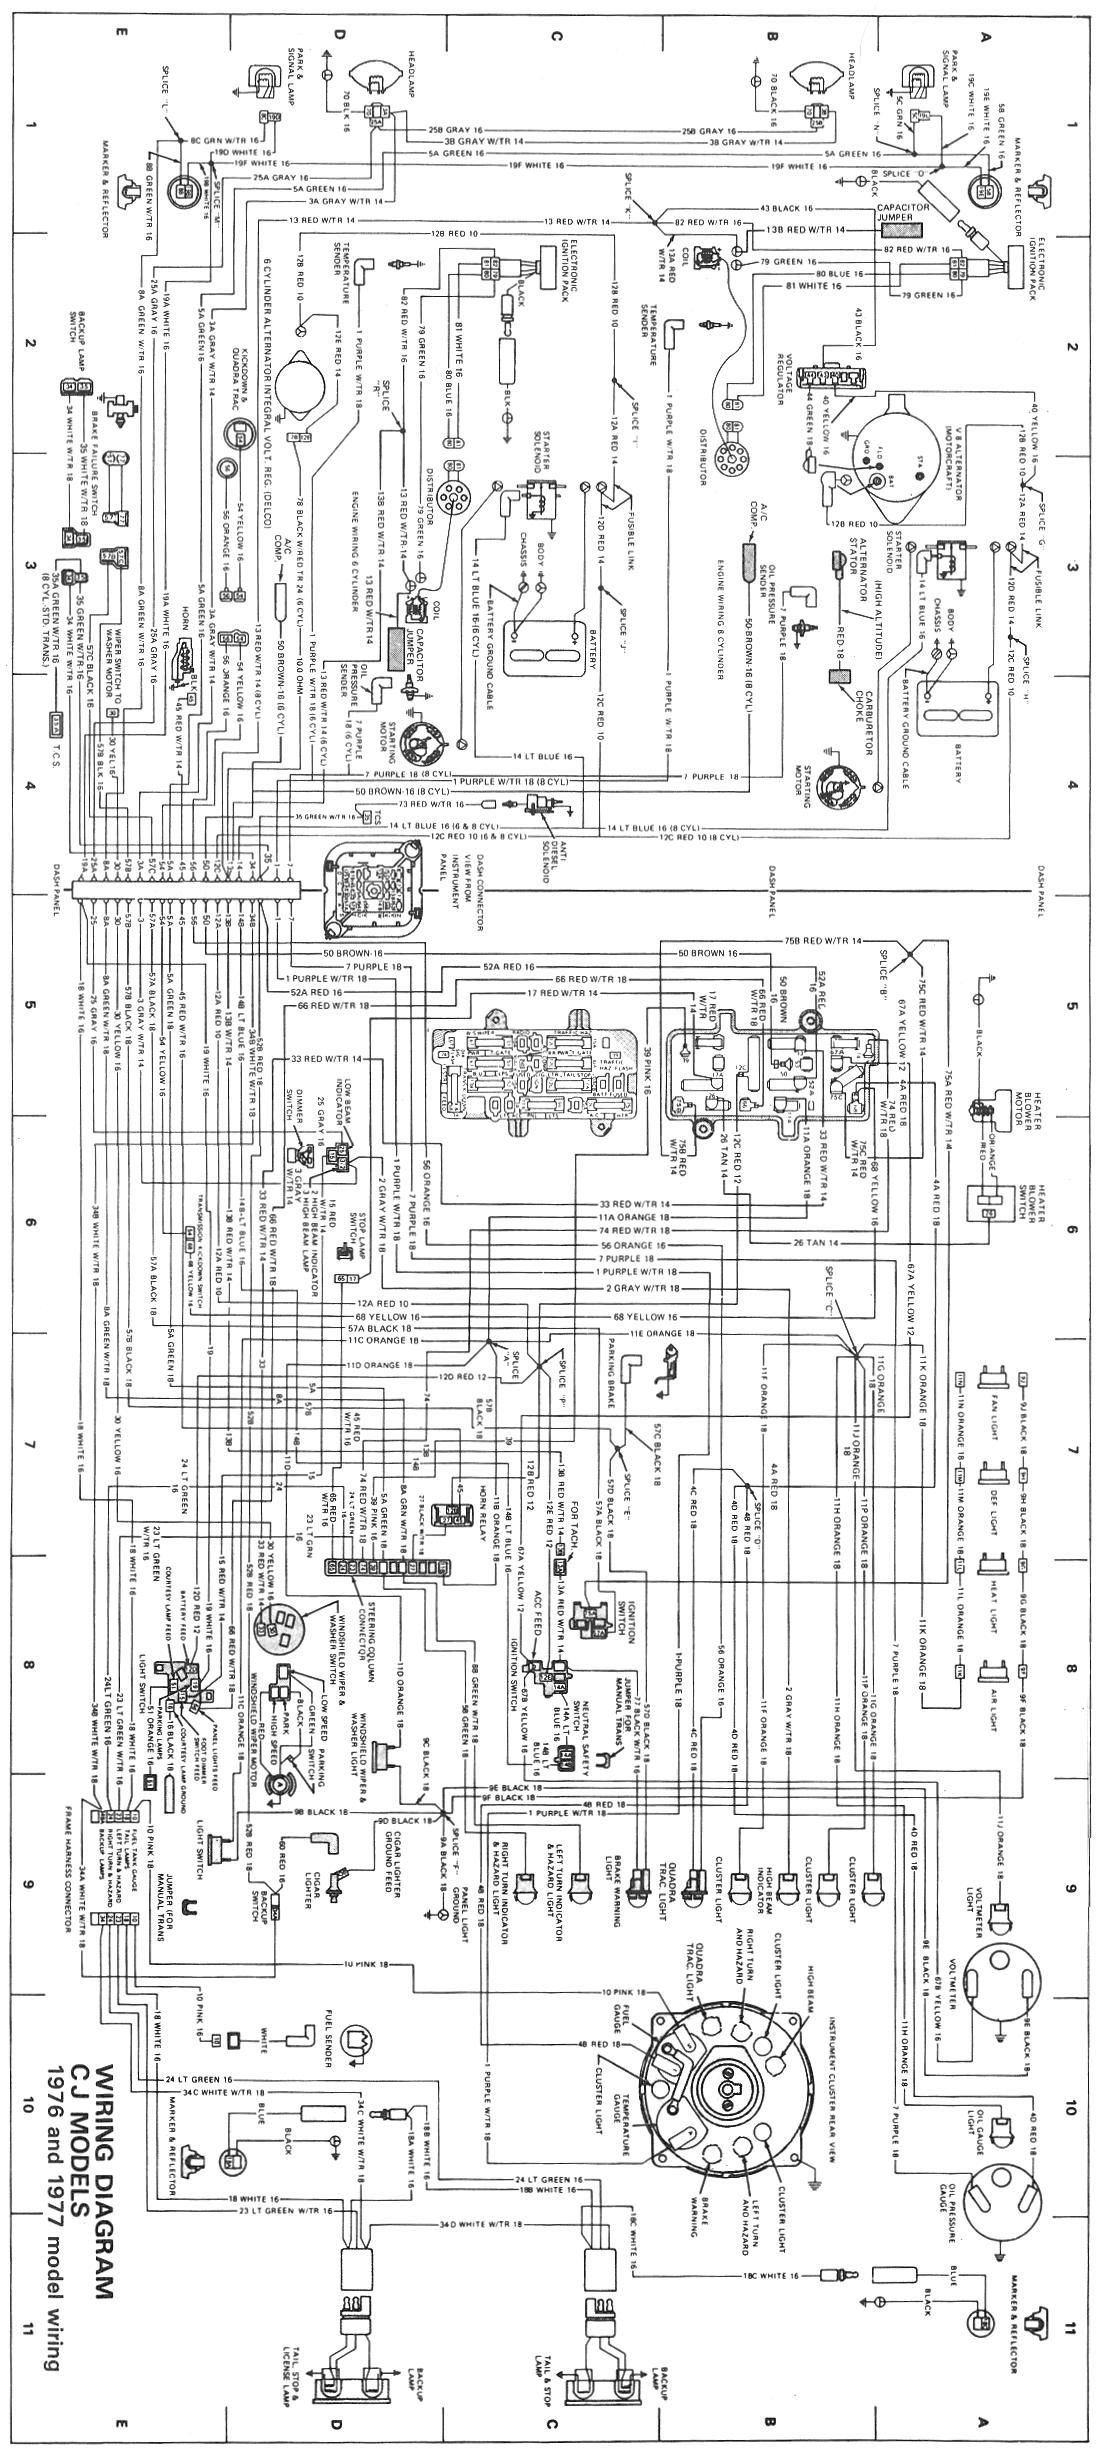 jeep wiring diagrams 1976 and 1977 cj jeep wiring pinterest 1984 CJ7 Wiring-Diagram jeep wiring diagrams 1976 and 1977 cj